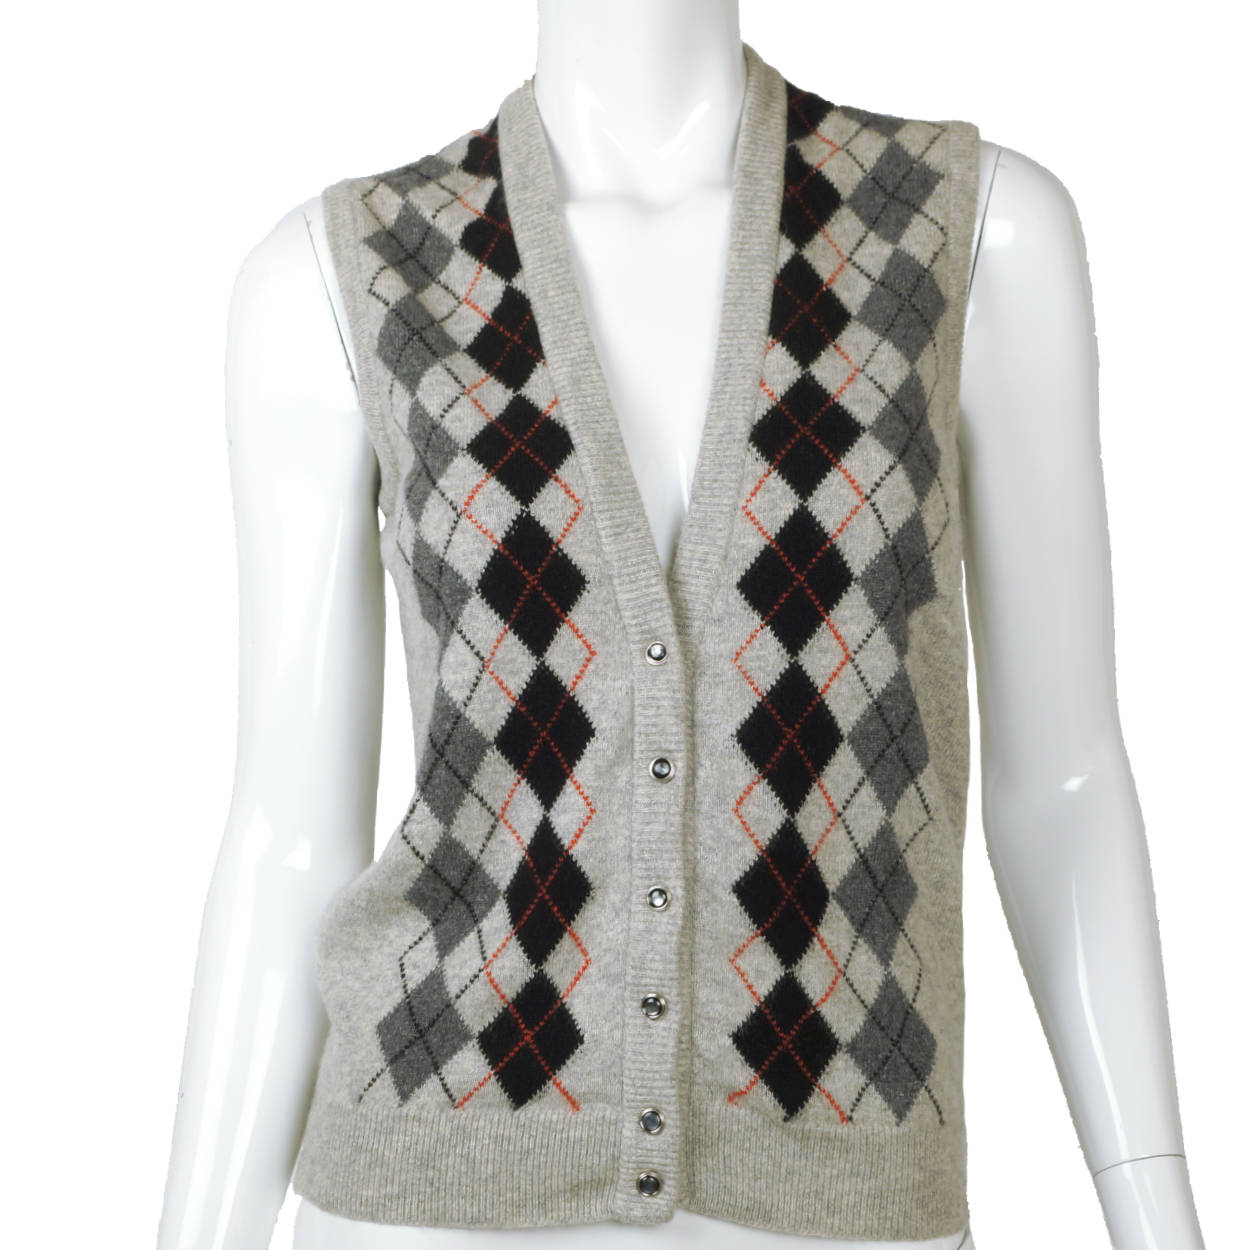 Vintage 1970s Jaeger British Cashmere Sweater Vest Argyle Pattern Ladies M